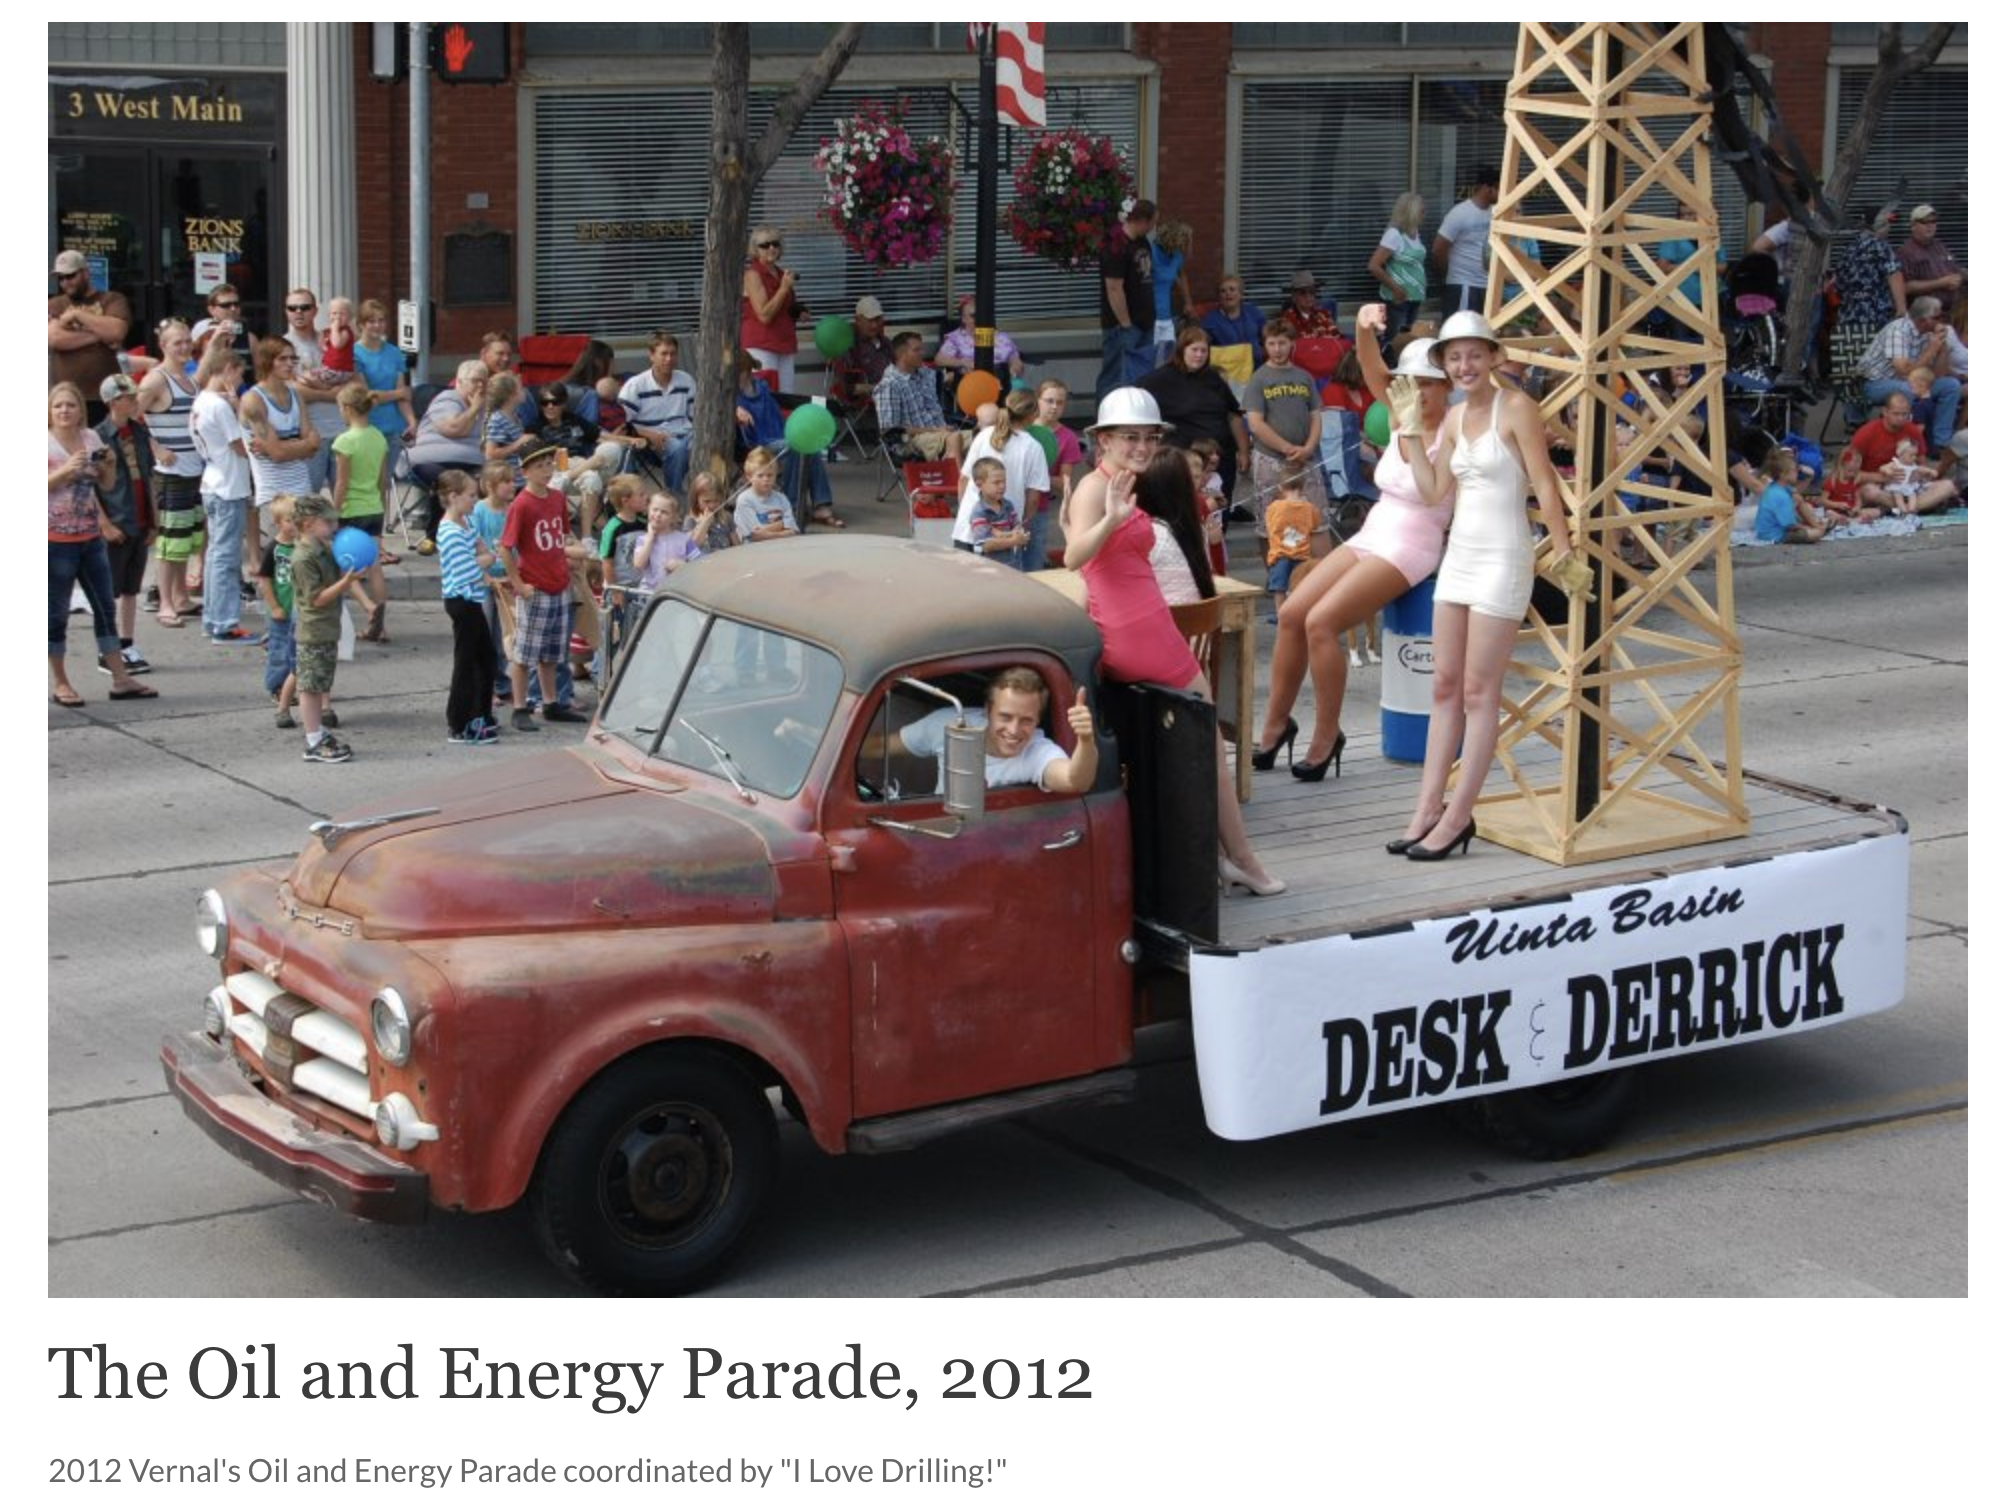 Oil and Energy Parade 2012 I Love Drilling